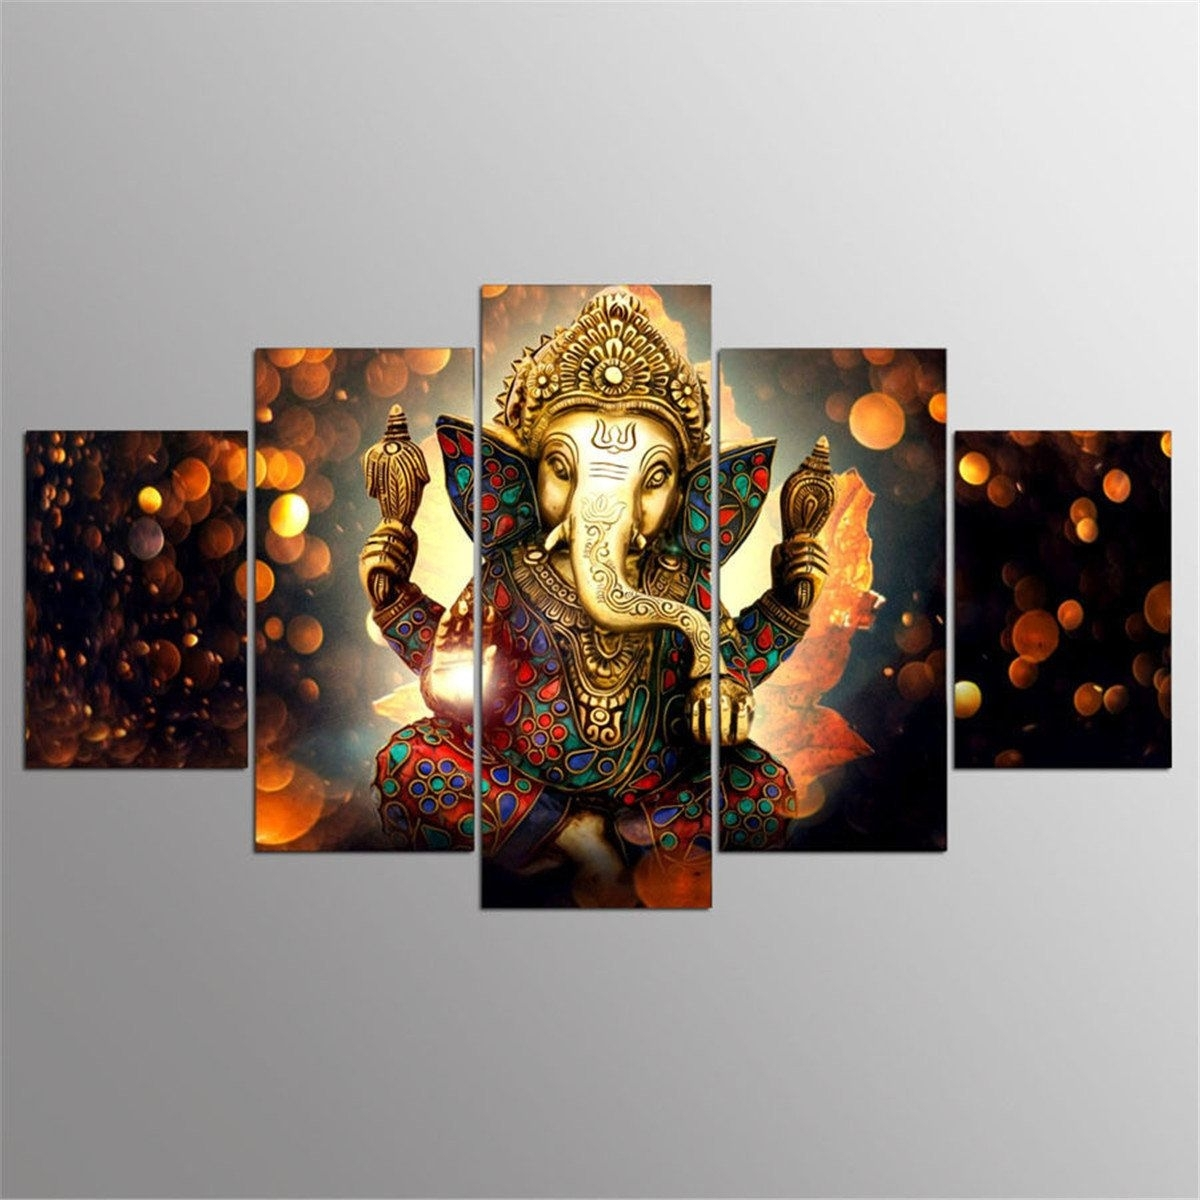 5Pcs Ganesha Painting Abstract Print Modern Canvas Wall Art Poster Intended For Latest Modern Wall Art Decors (View 19 of 20)